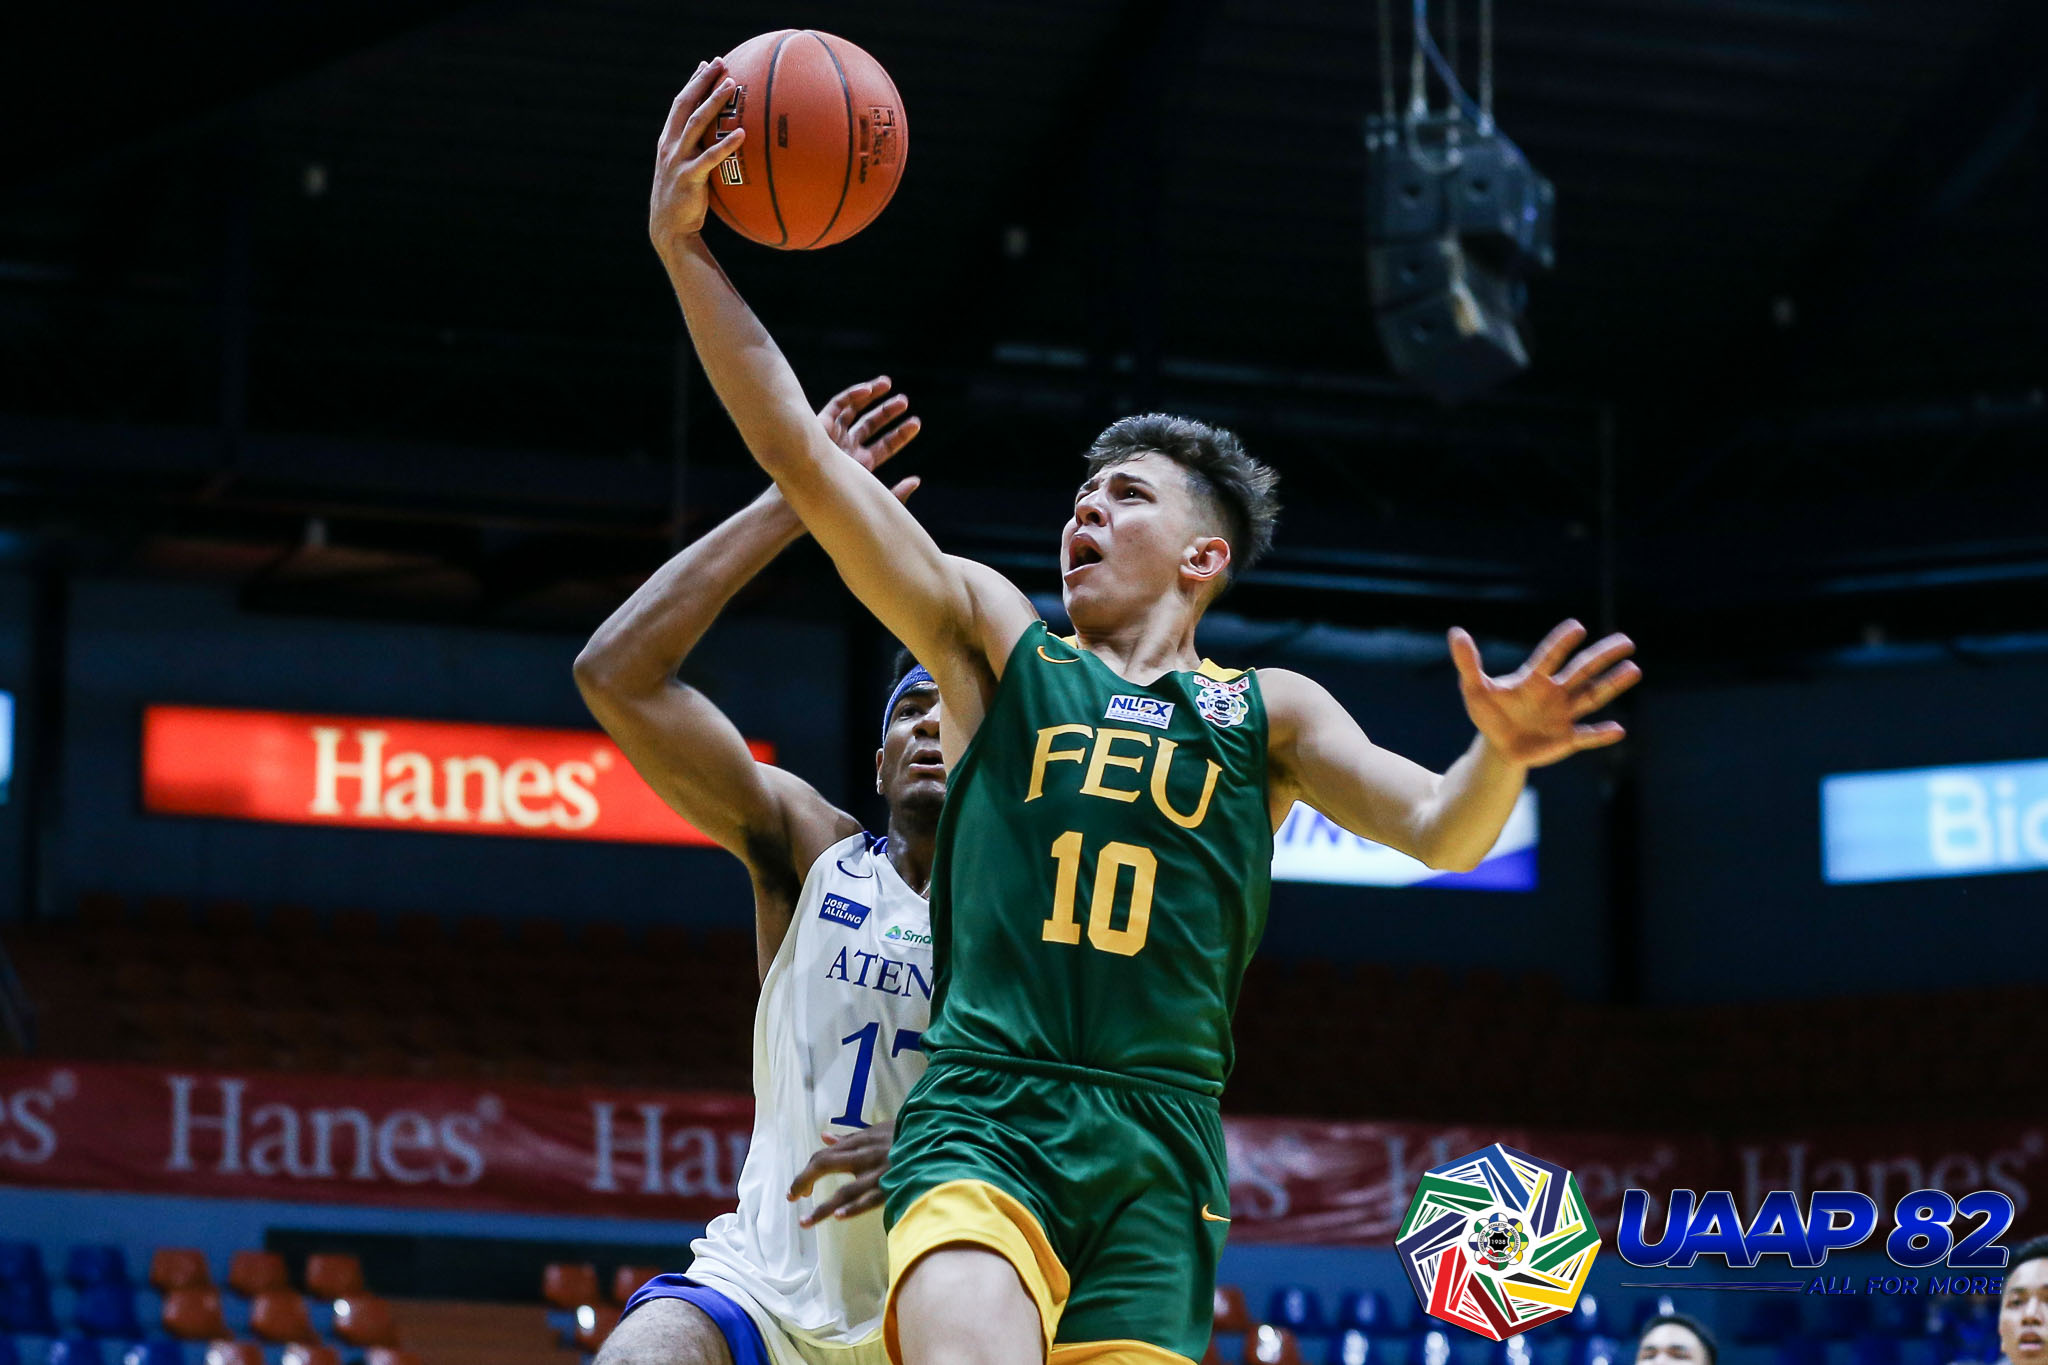 Tiebreaker Times NU-NS Bullpups clinch playoff berth as FEU-D locks down AHS in UAAP 82 Boys' Basketball ADMU AdU Basketball DLSU FEU News NU UAAP UE UP UST  Vincent Saldua Vhoris Marasigan UST Boys Basketball UPIS Boys Basketball UE Boys Basketball UAAP Season 82 Boys' Basketball UAAP Season 82 Terrence Fortea Reyland Torres Ray Torres Patrick Sleat NU Boys Basketball Lebron Lopez Kevin Quiambao Kean Baclaan Jorick Bautista John Figueroa Jann Cruz James Maliwat Jacob Cortez Goldwin Monteverde FEU Boys Basketball DLSZ Boys Basketball Chiolo Anonuevo Carl Tamayo Bismarck Lina Ateneo Boys Basketball Adamson Boys Basketball